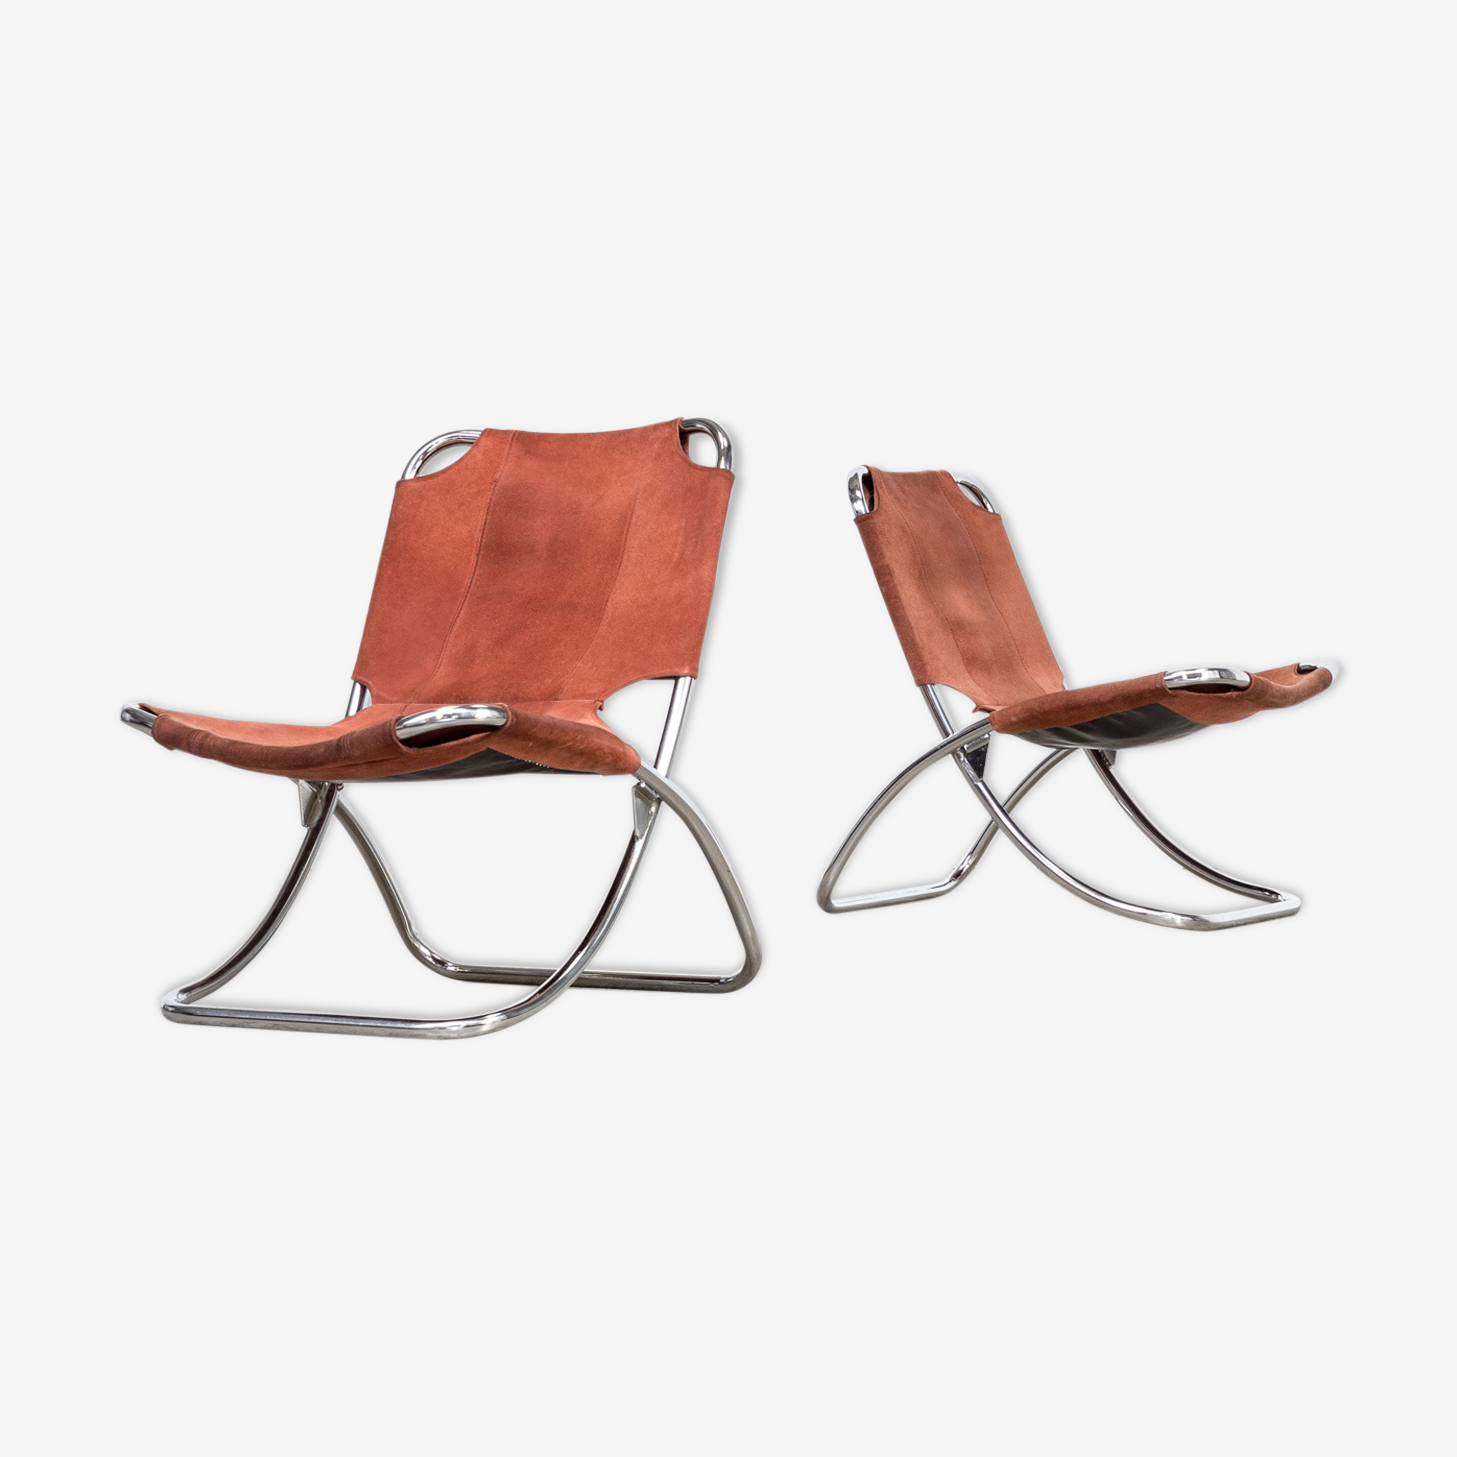 Set of 2 chrome framed and leather folding chair 60's